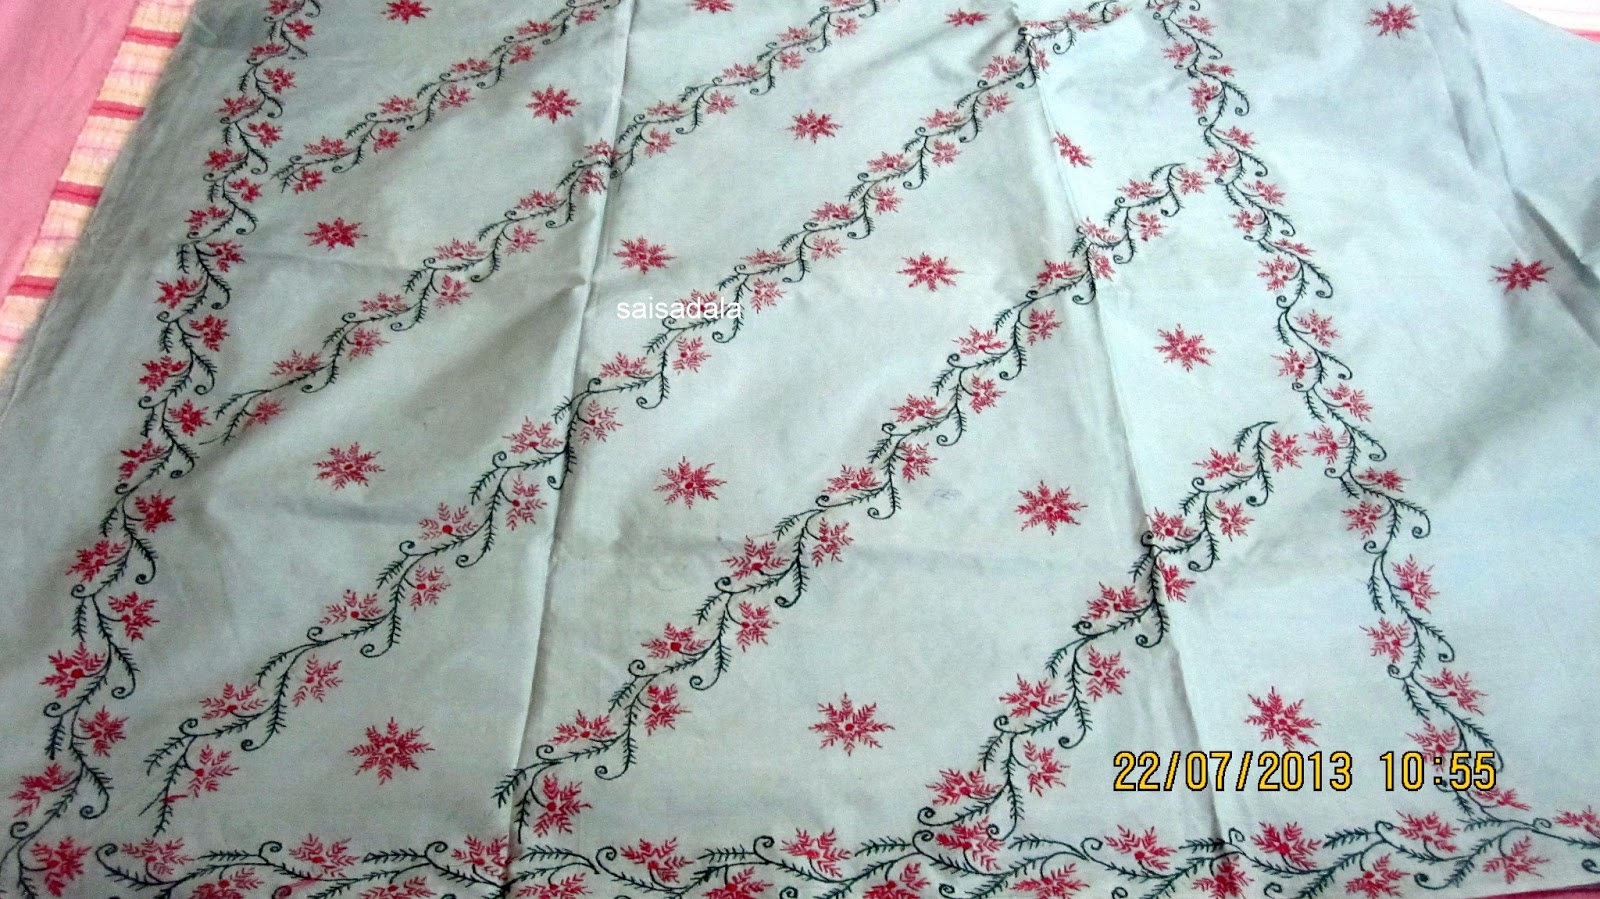 Sadala s embroidery kashmir work